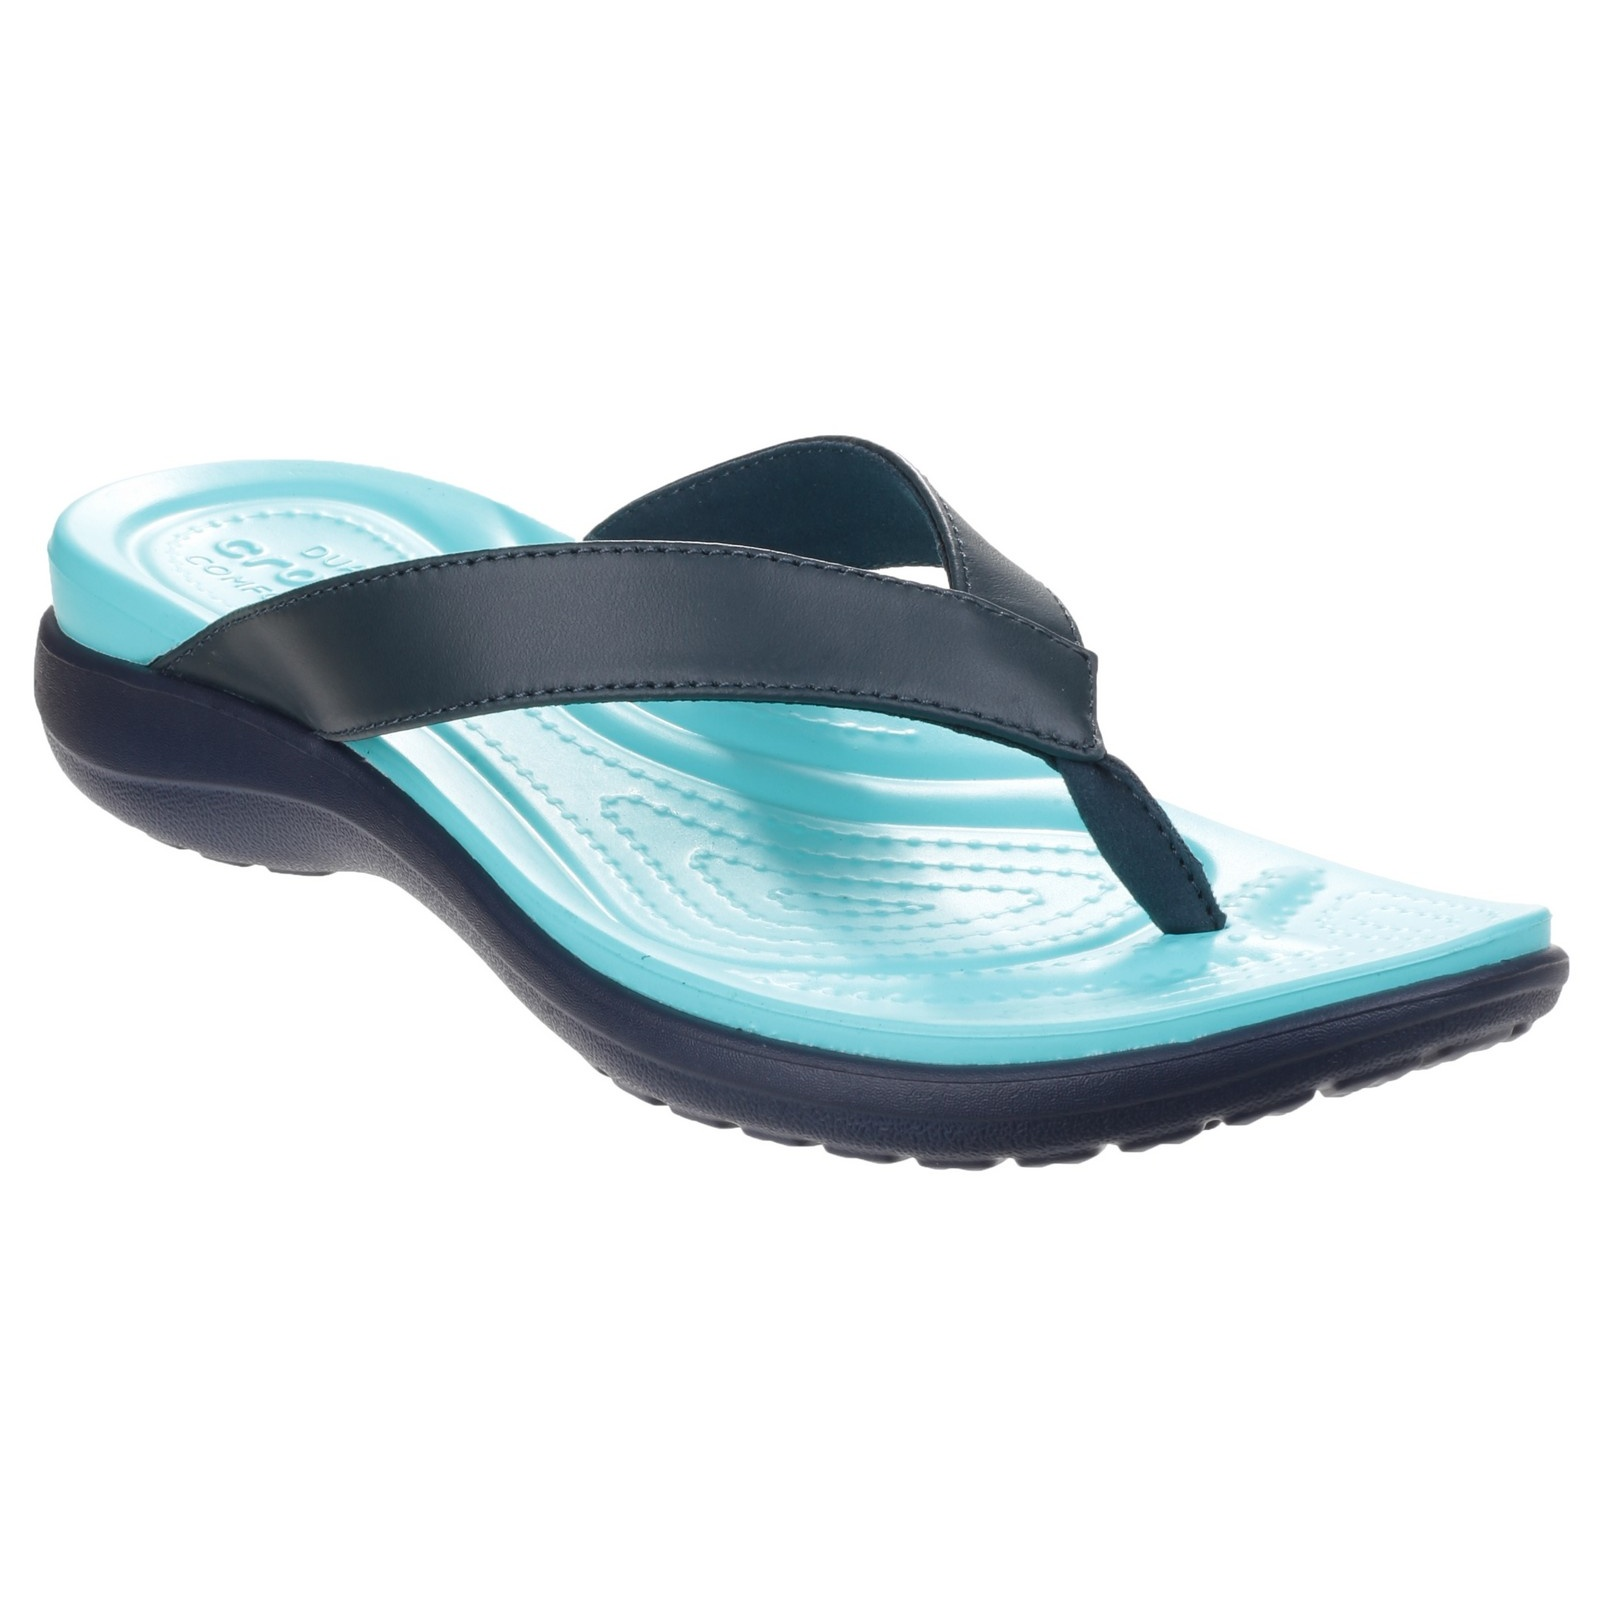 crocs womens ladies capri v summer flip flops ebay. Black Bedroom Furniture Sets. Home Design Ideas